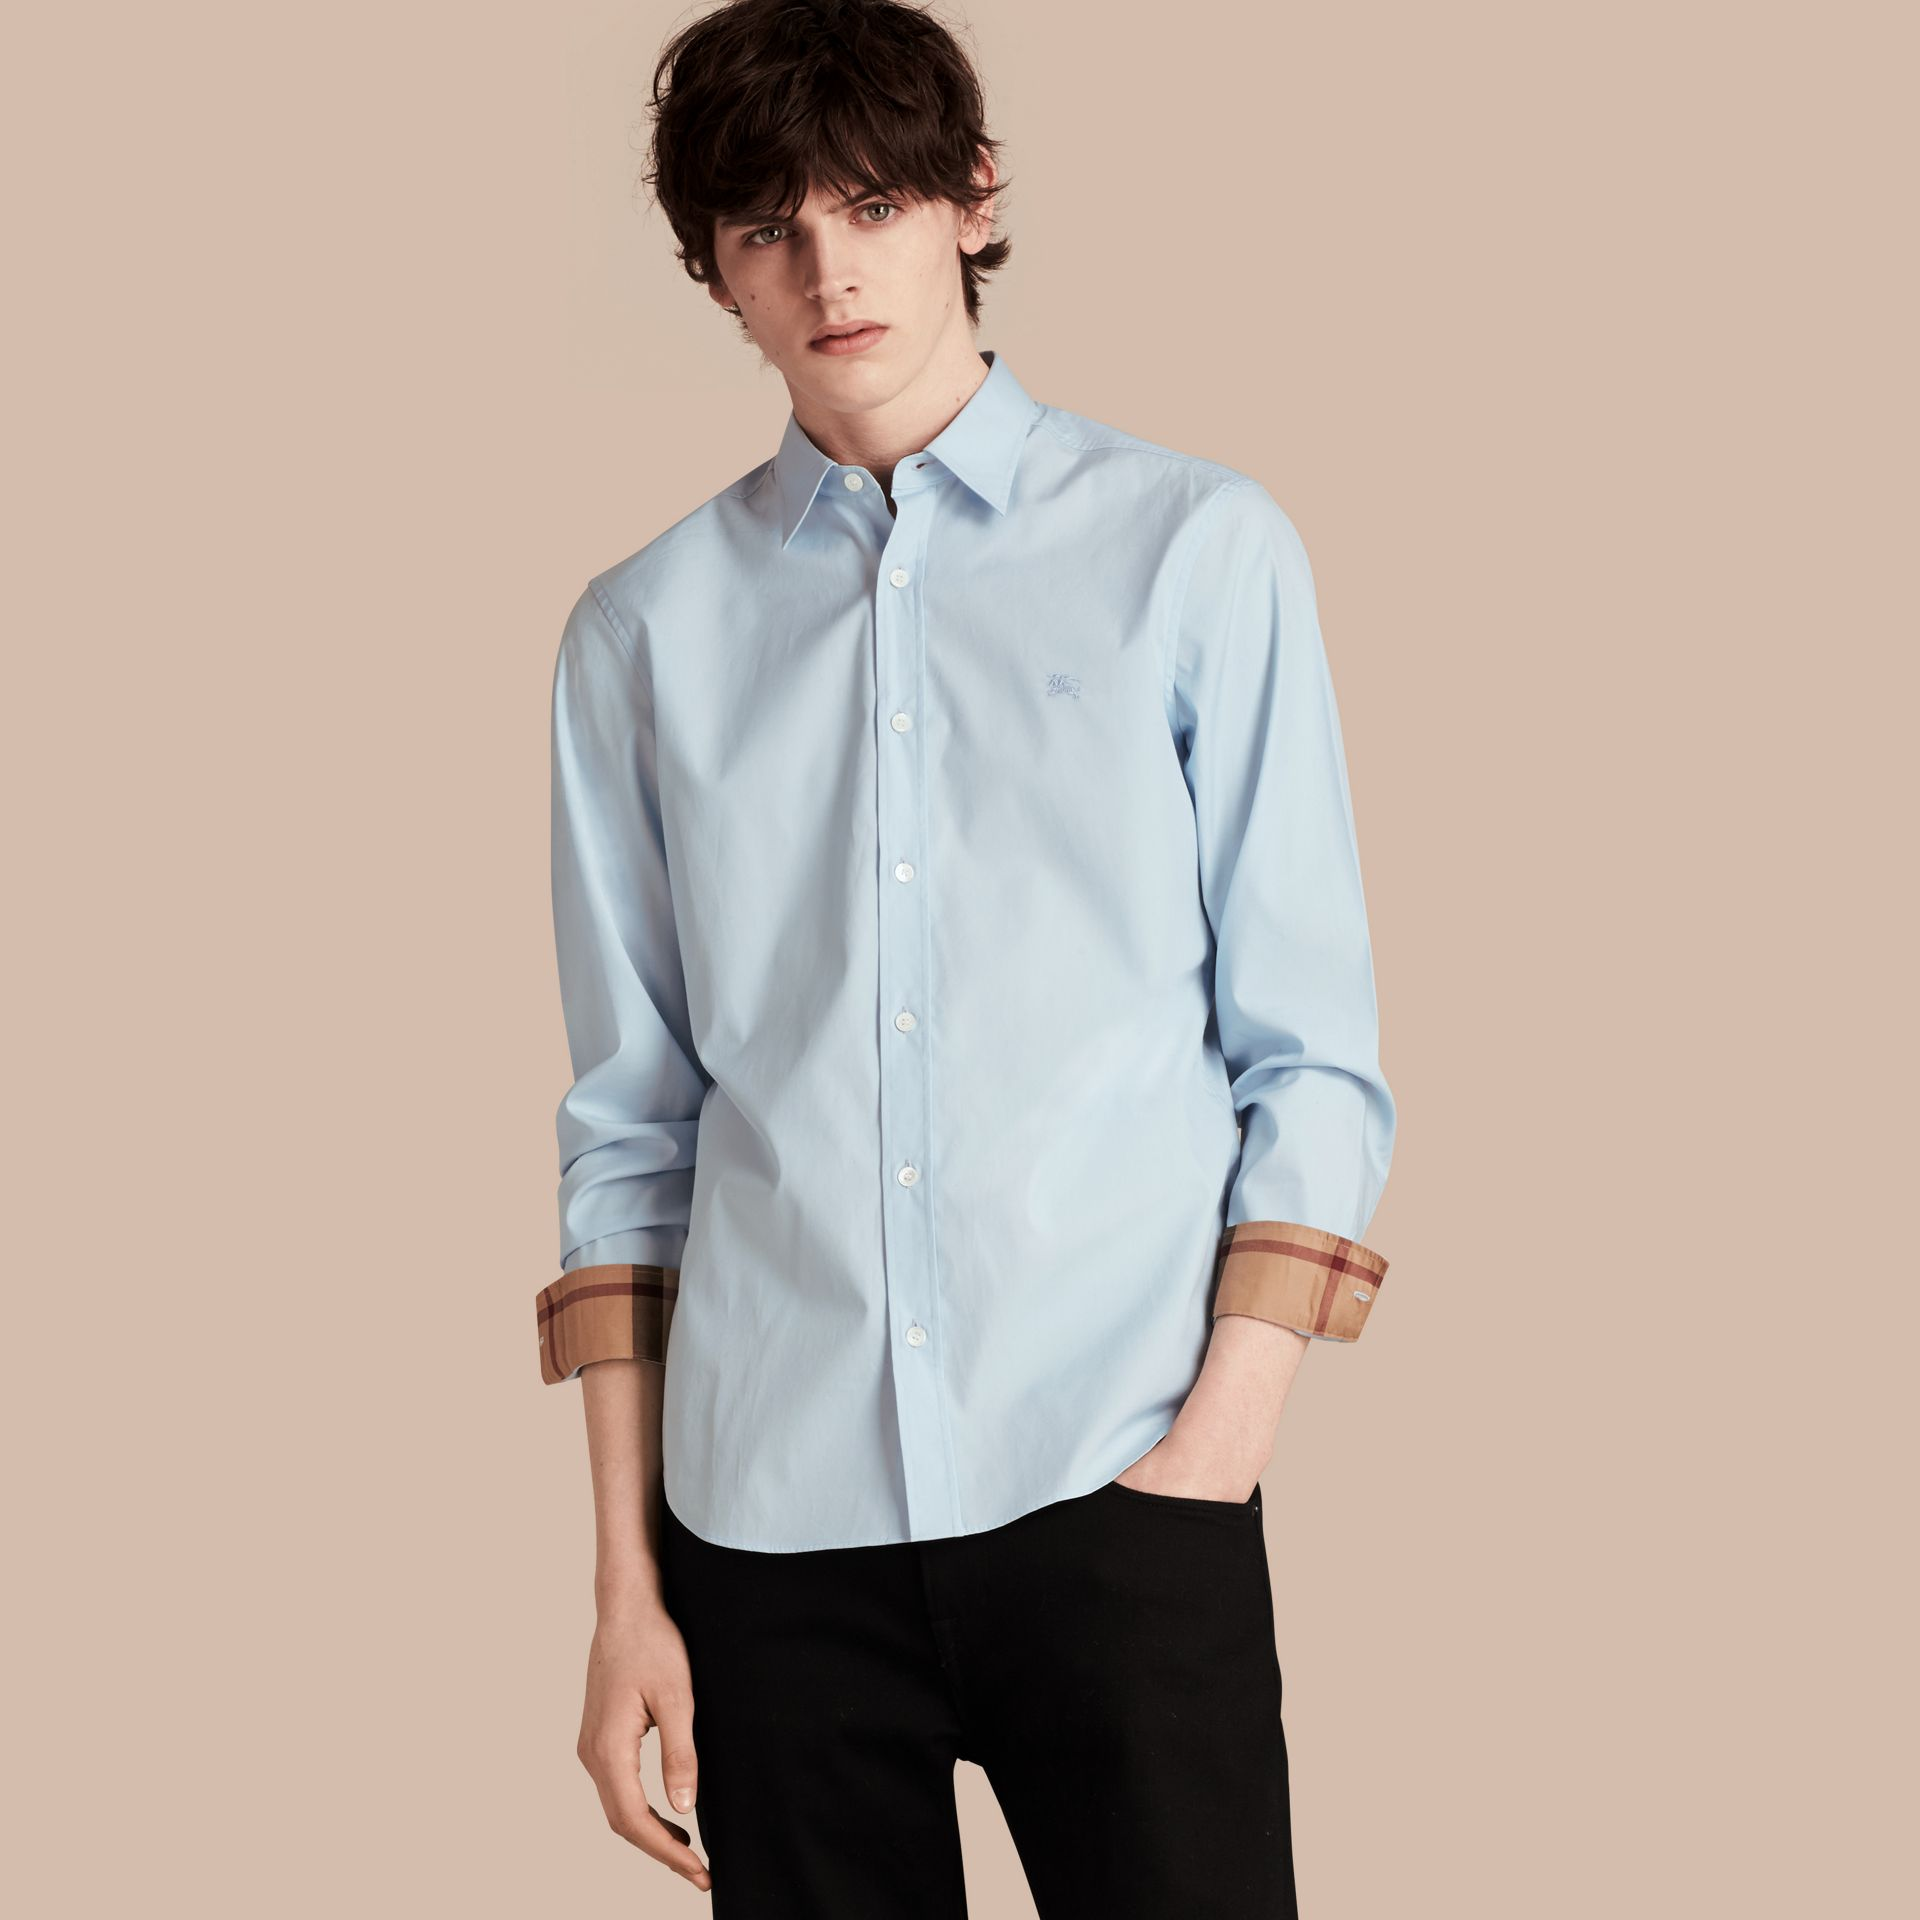 Pale blue Check Detail Stretch Cotton Poplin Shirt Pale Blue - gallery image 1